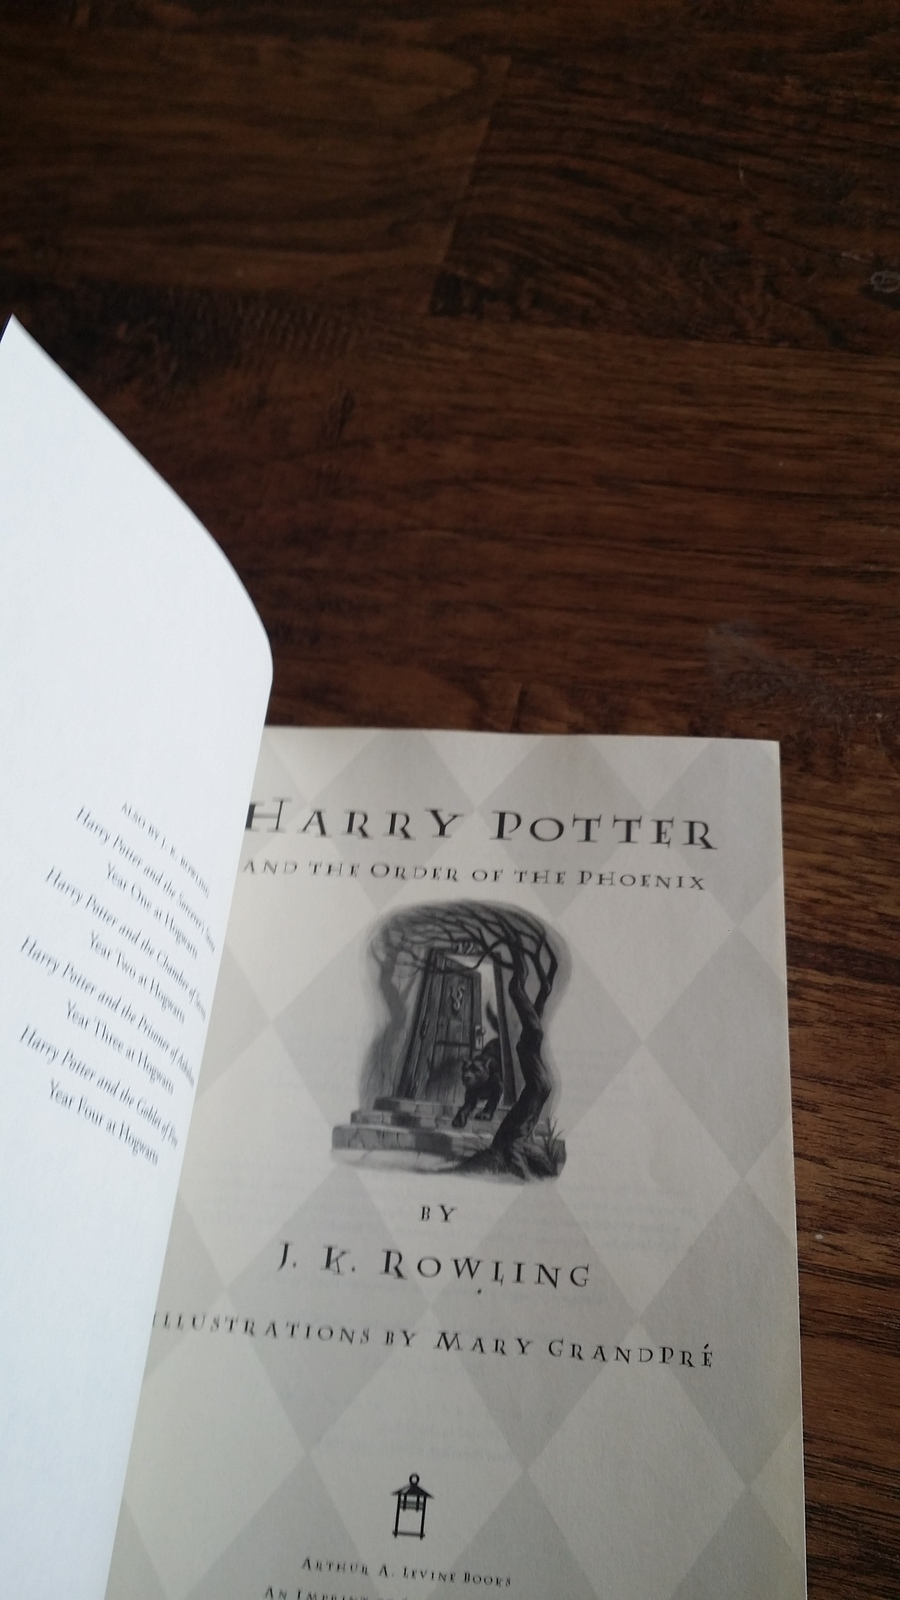 Harry Potter and The Order of The Phoenix by J.K. Rowling (2003 Hardcover)